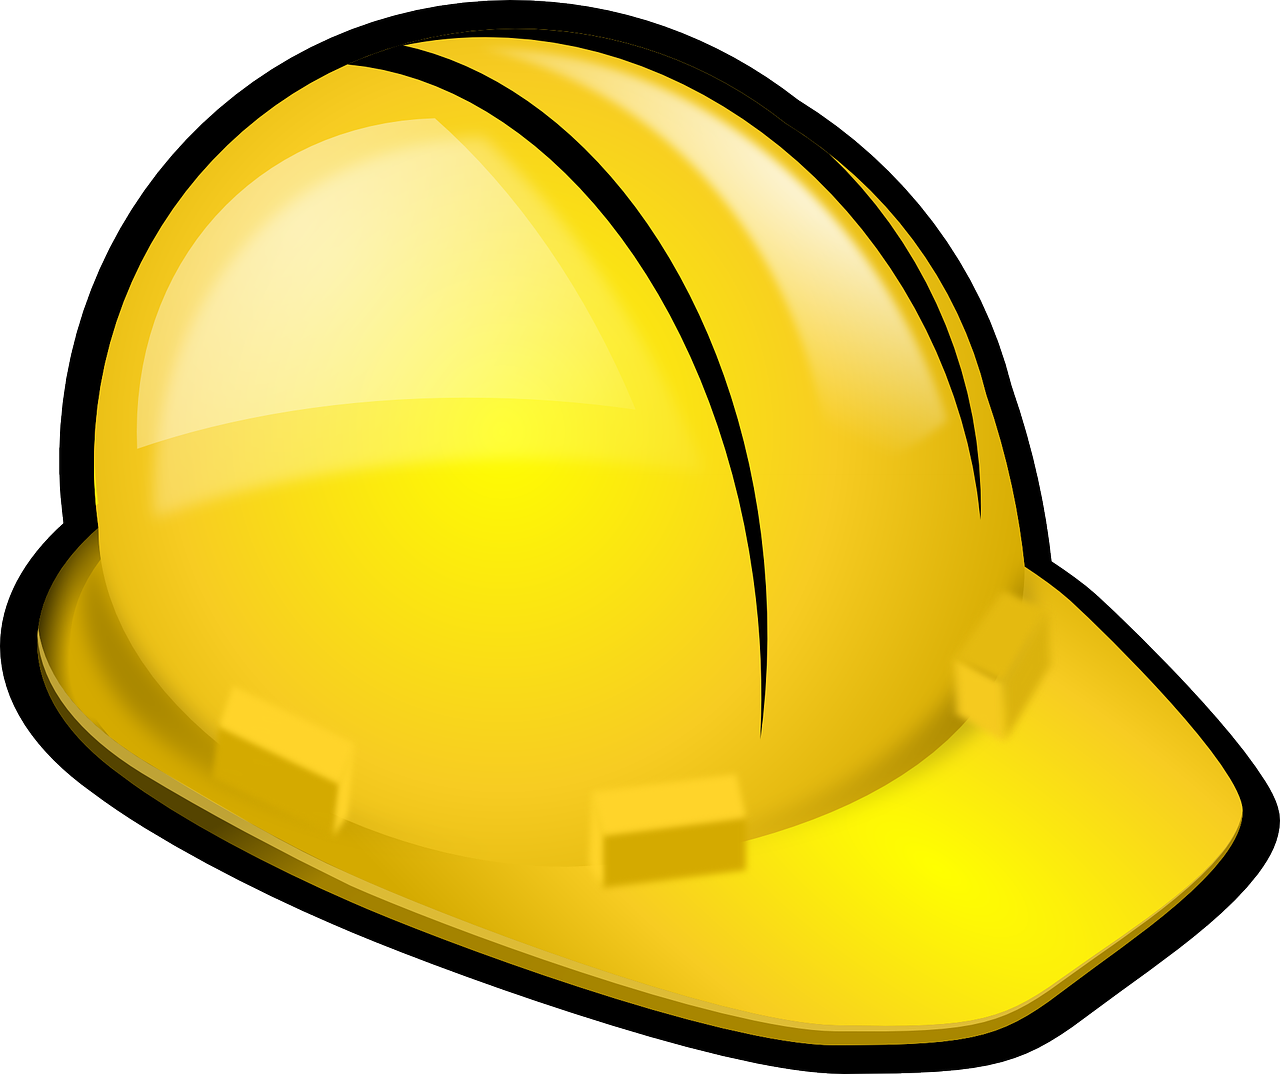 Helmet clipart plain. Safe work australia report